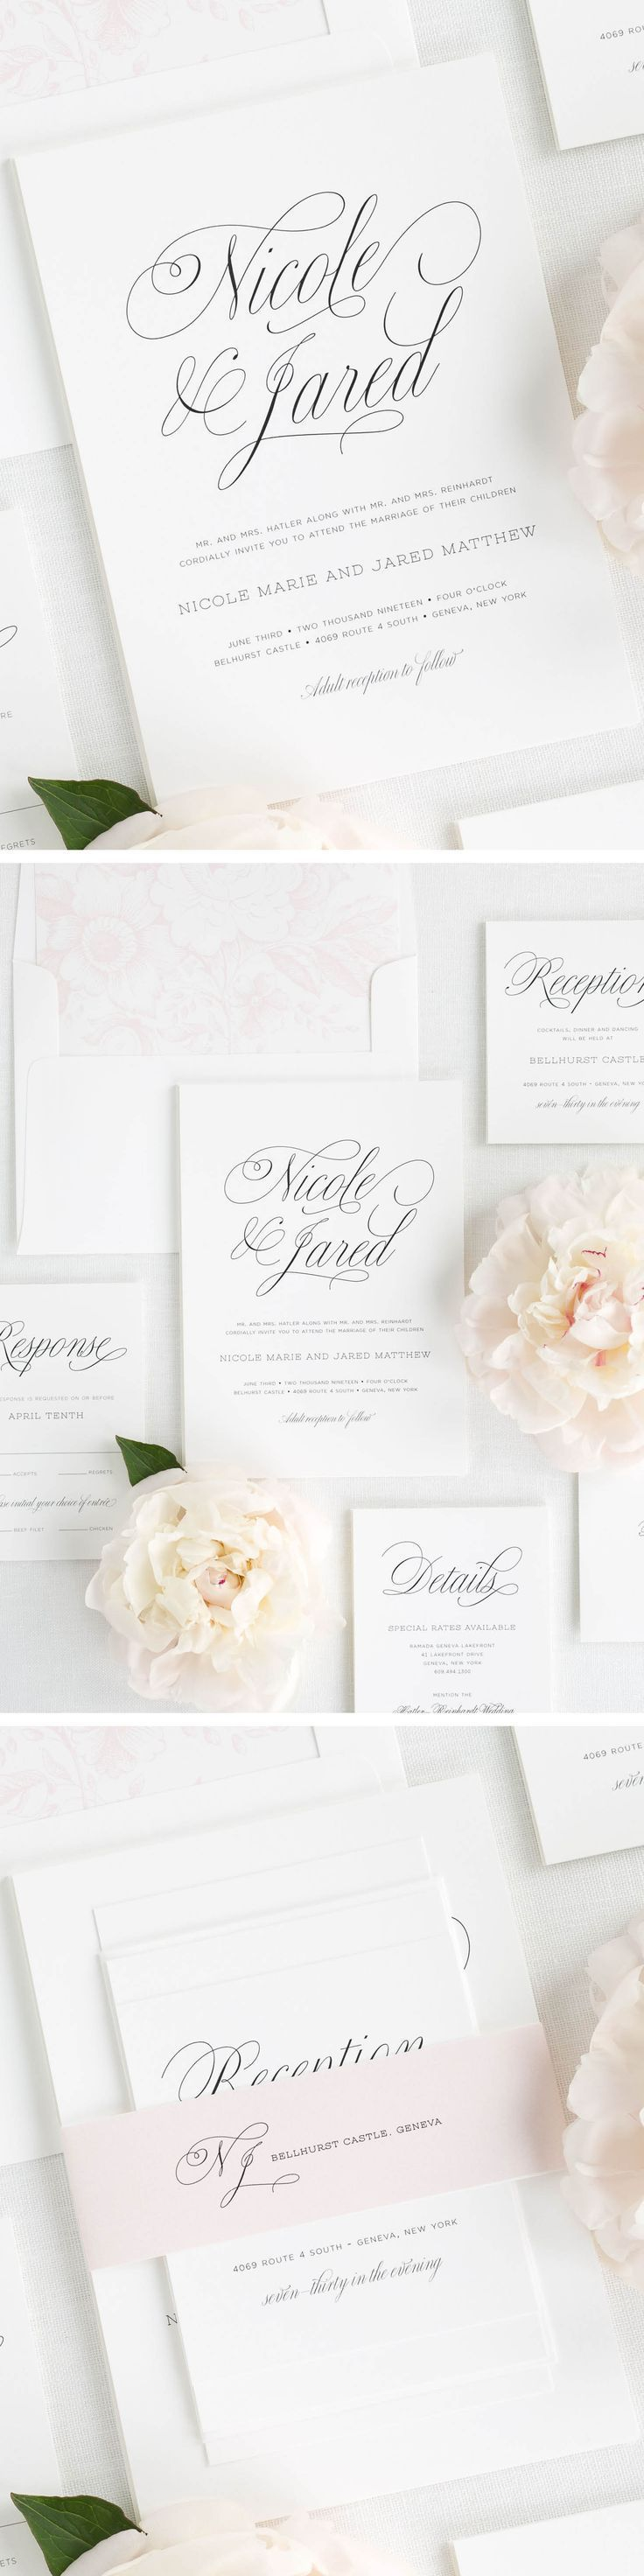 Happy birthday sign in elegant black script type with ornament - A Beautiful And Delicate Script Font Highlights The Couple S Names On This Simple And Elegant Wedding